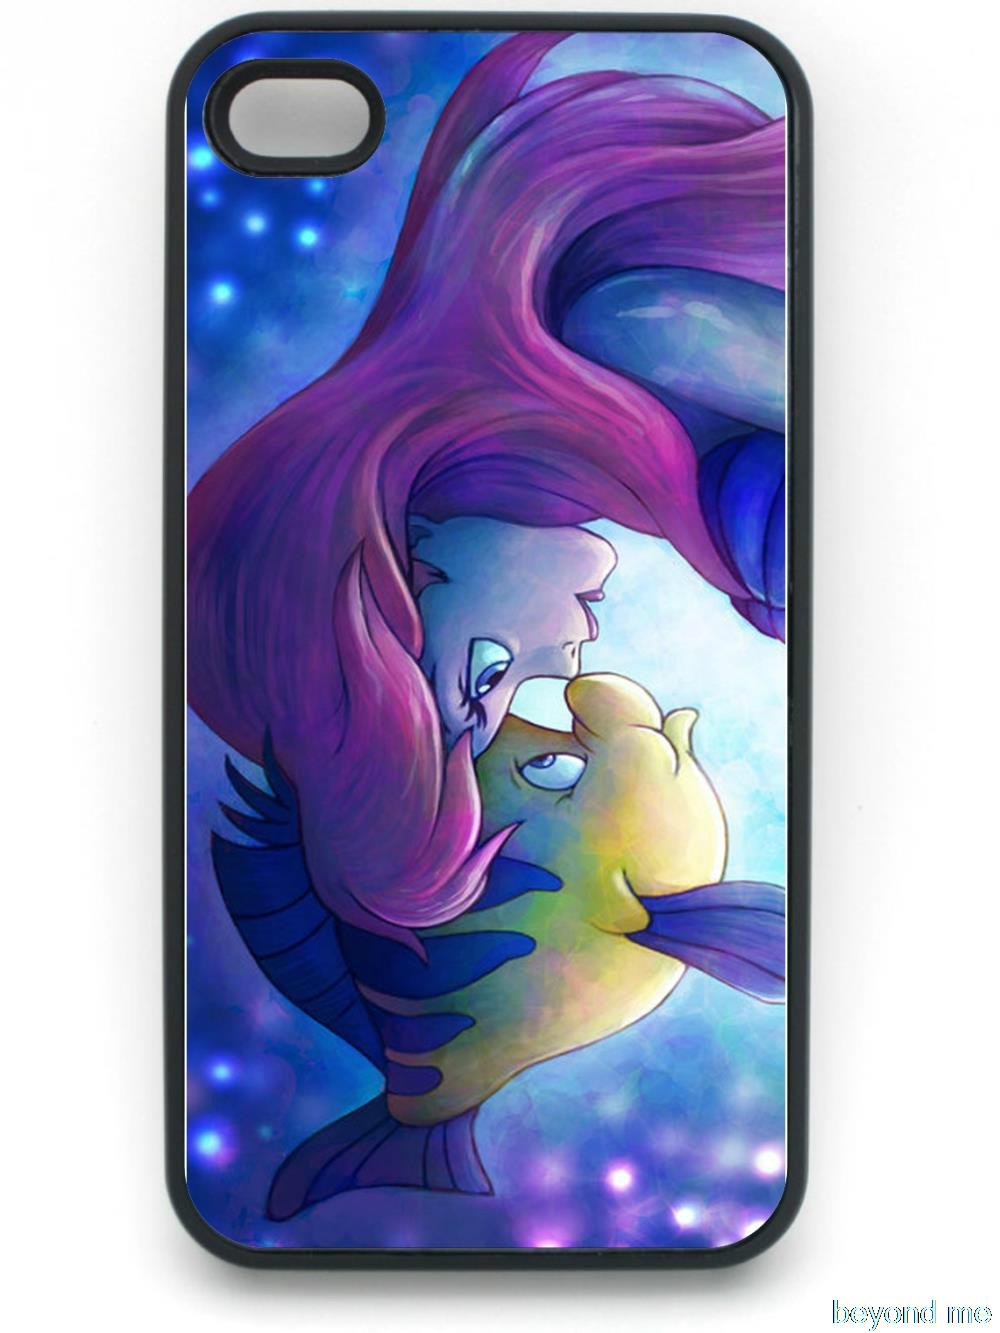 The Little Mermaid Cell phone Case for iPhone 4 5 5s 5c 6 Plus and case for samsung galaxy s2 s3 s4 s5 mini Note 2 3 4 case